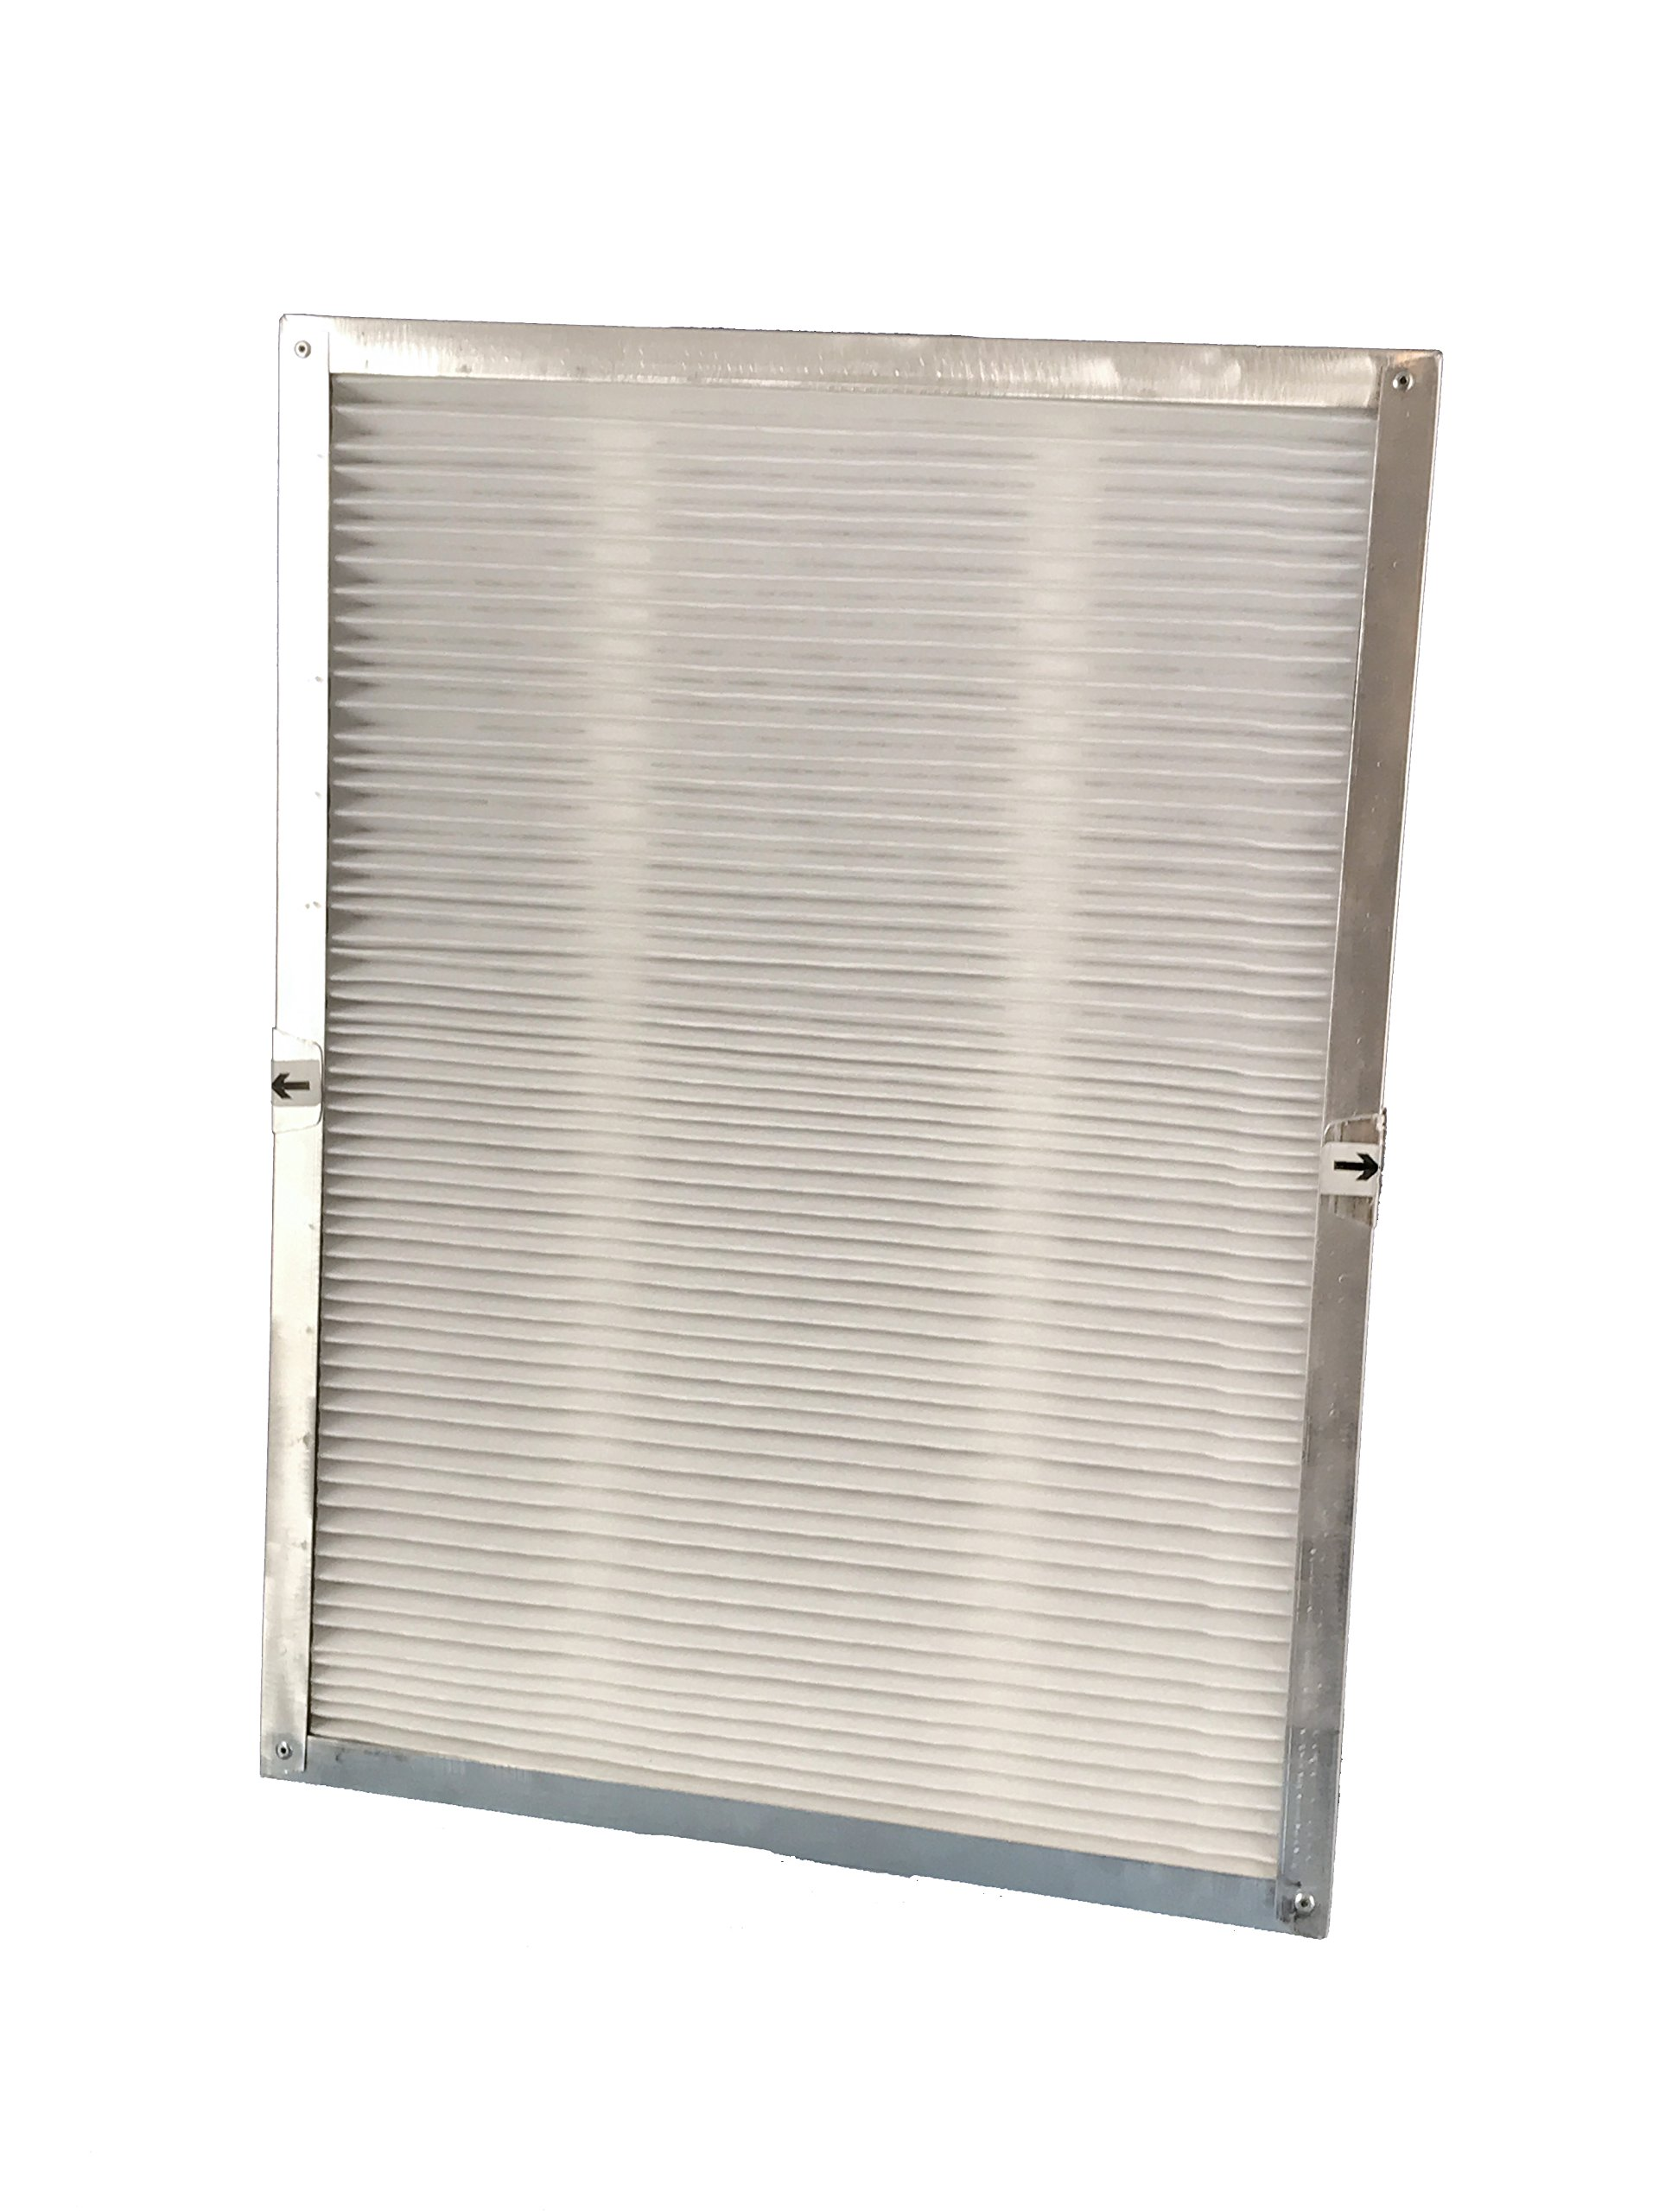 15x20x1 Accumulair Refillable Allergen Air & Furnace Filter with Reusable/Washable Frame